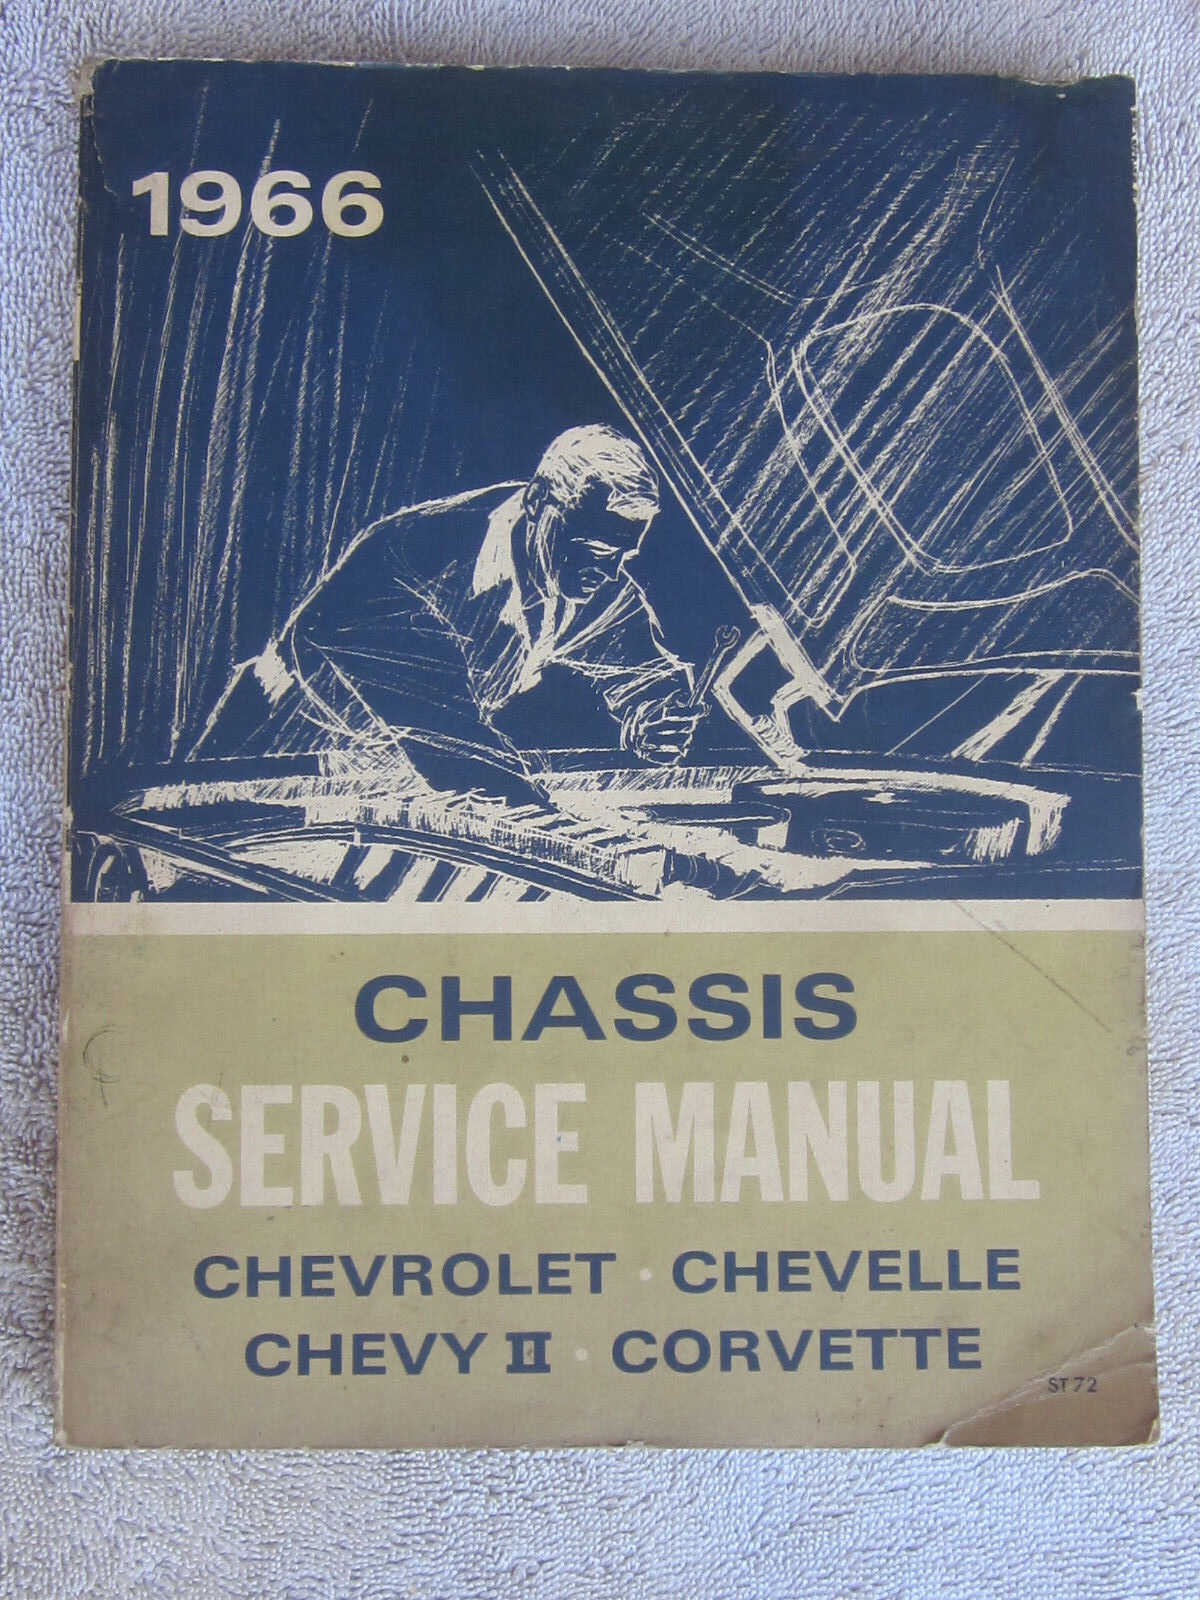 1966 Chevrolet Corvette Chevy II Chevelle Chassis Body Service Manual complete